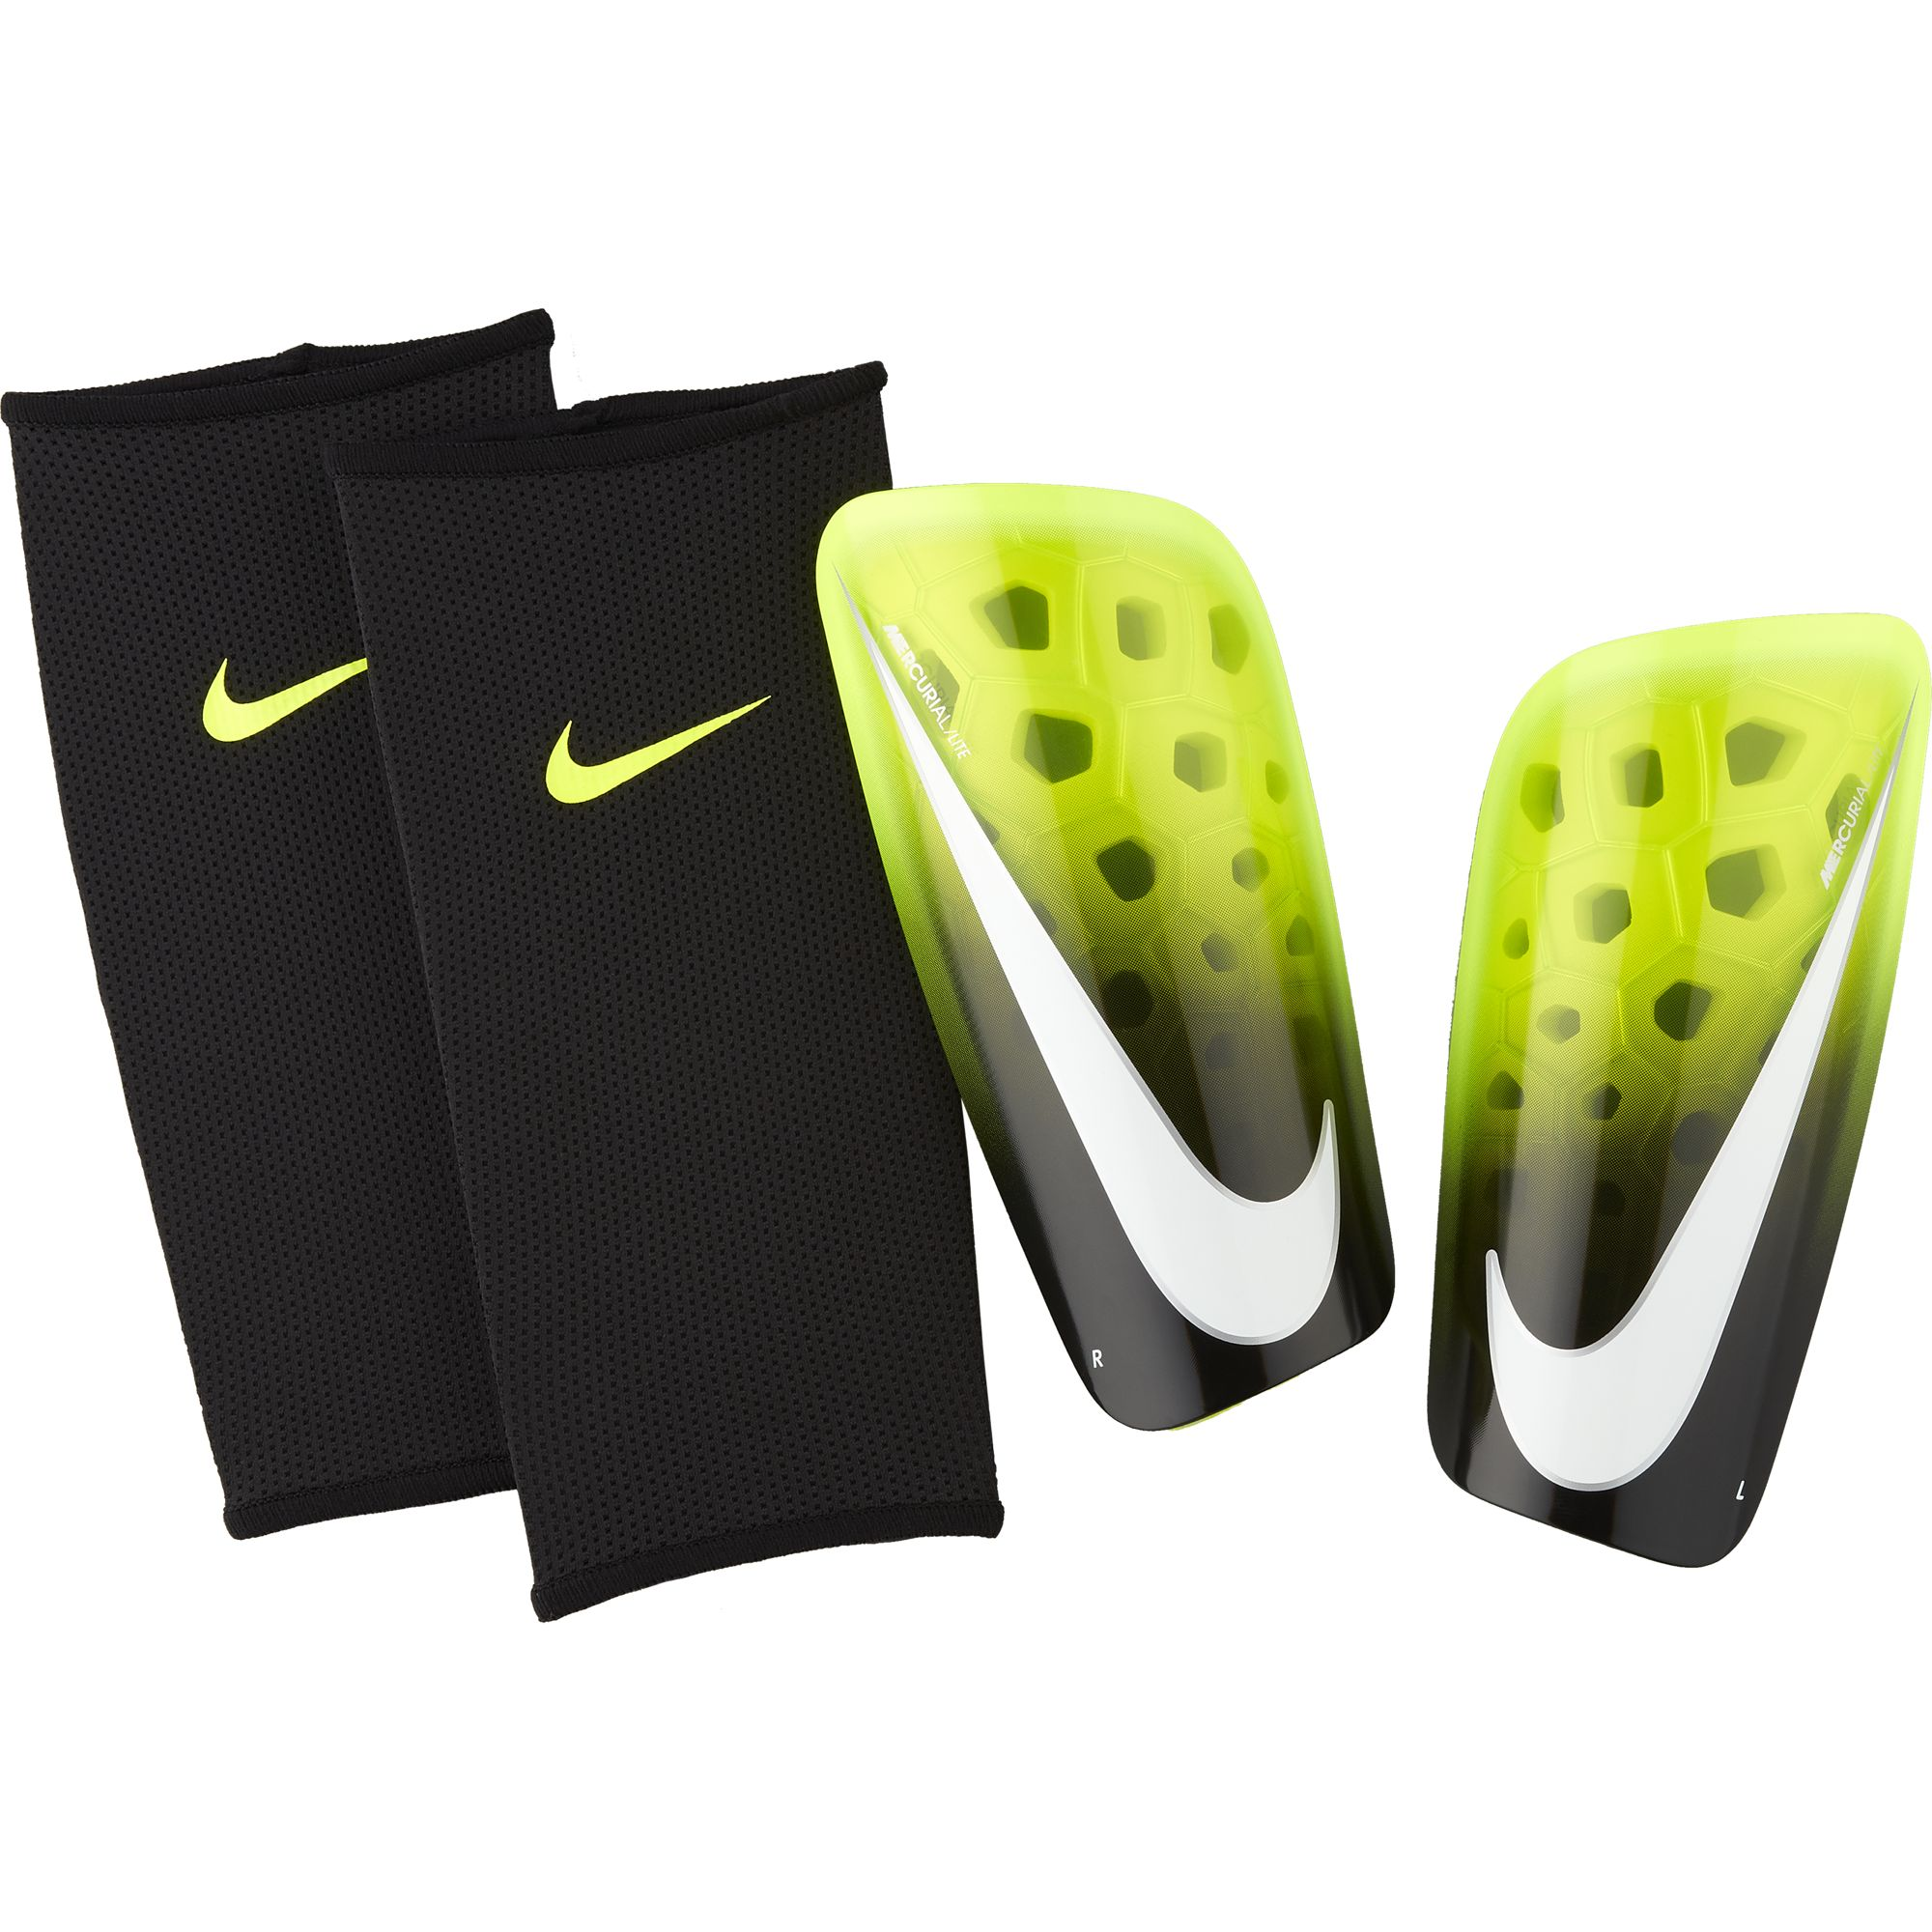 Mercurial Lite Shin Guards, Black/Neon, swatch